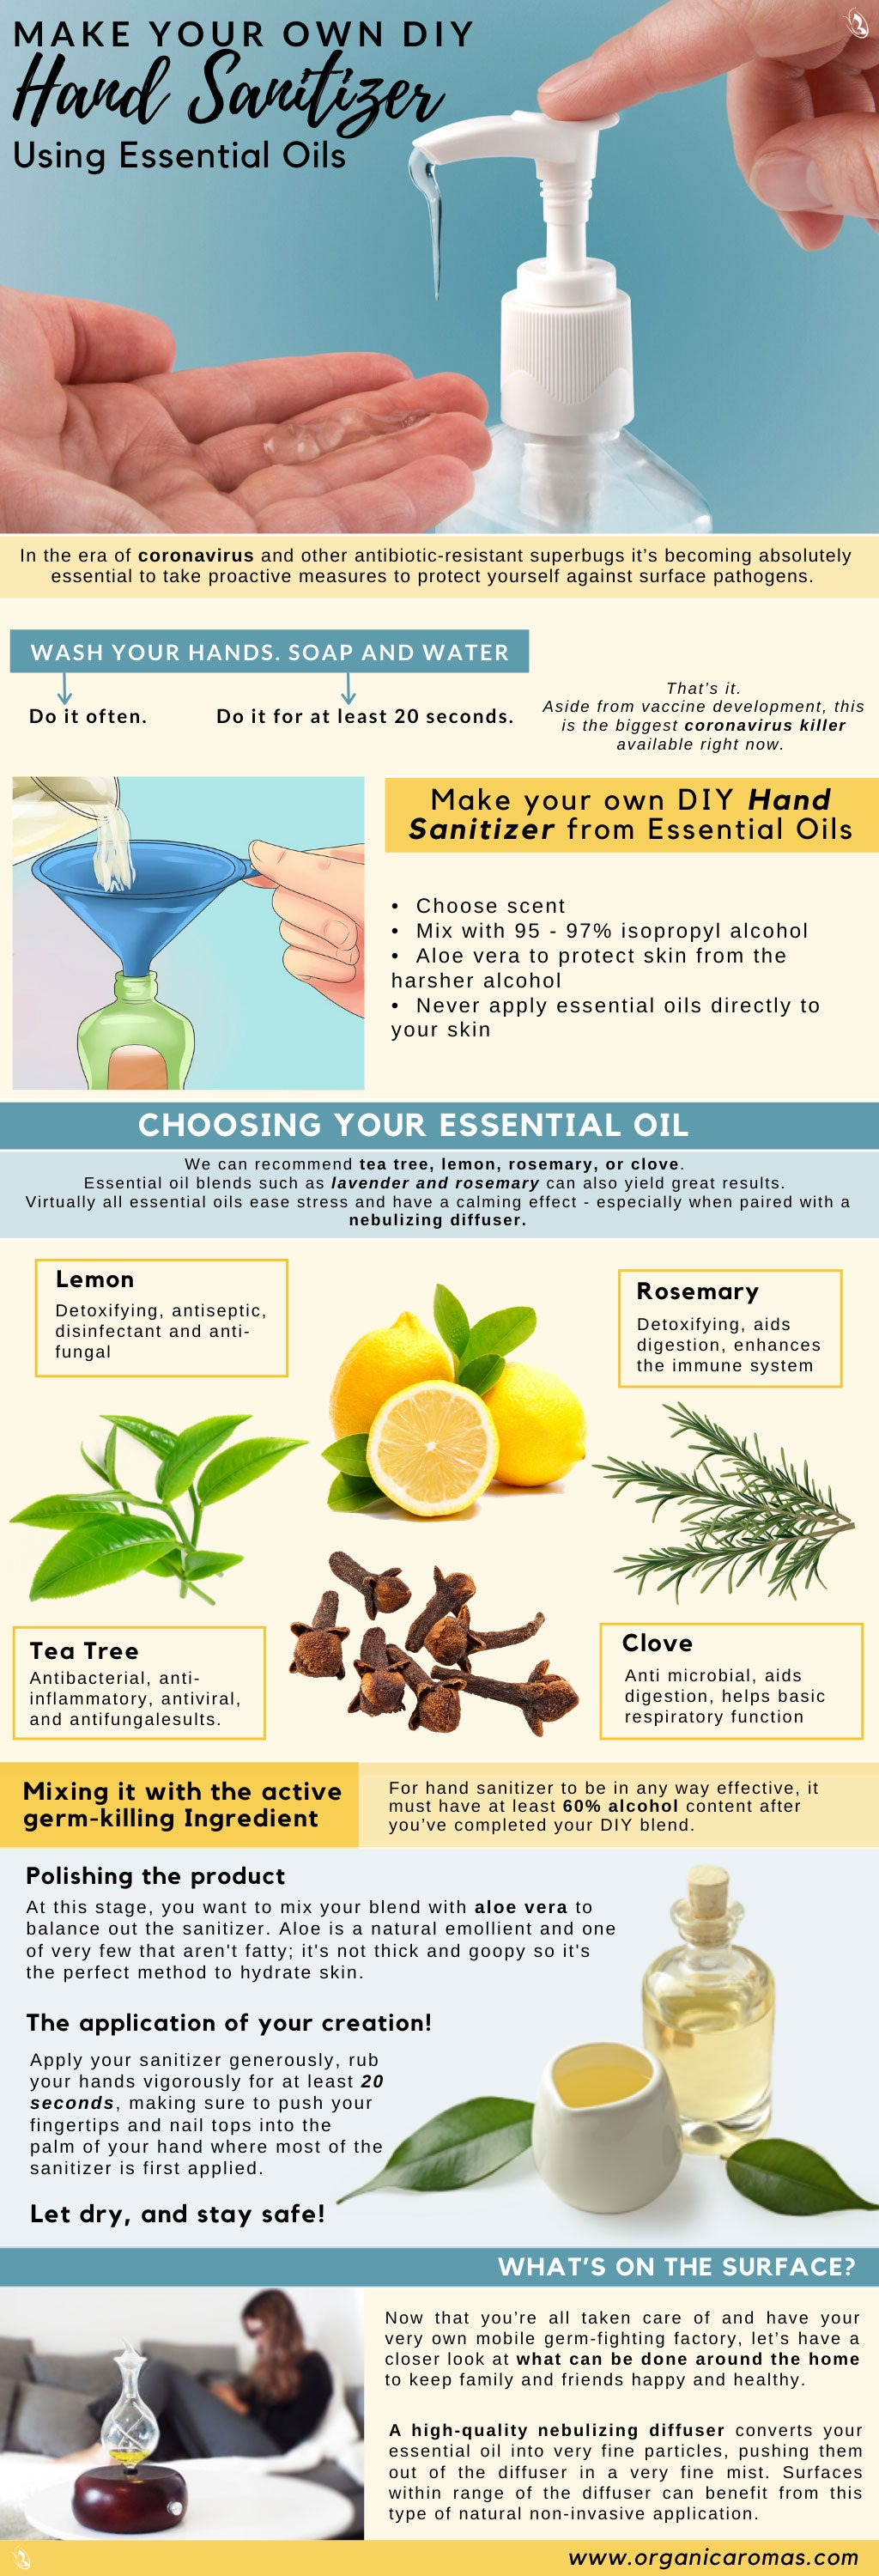 Make your Own DIY Hand Sanitizer Using Essential Oils